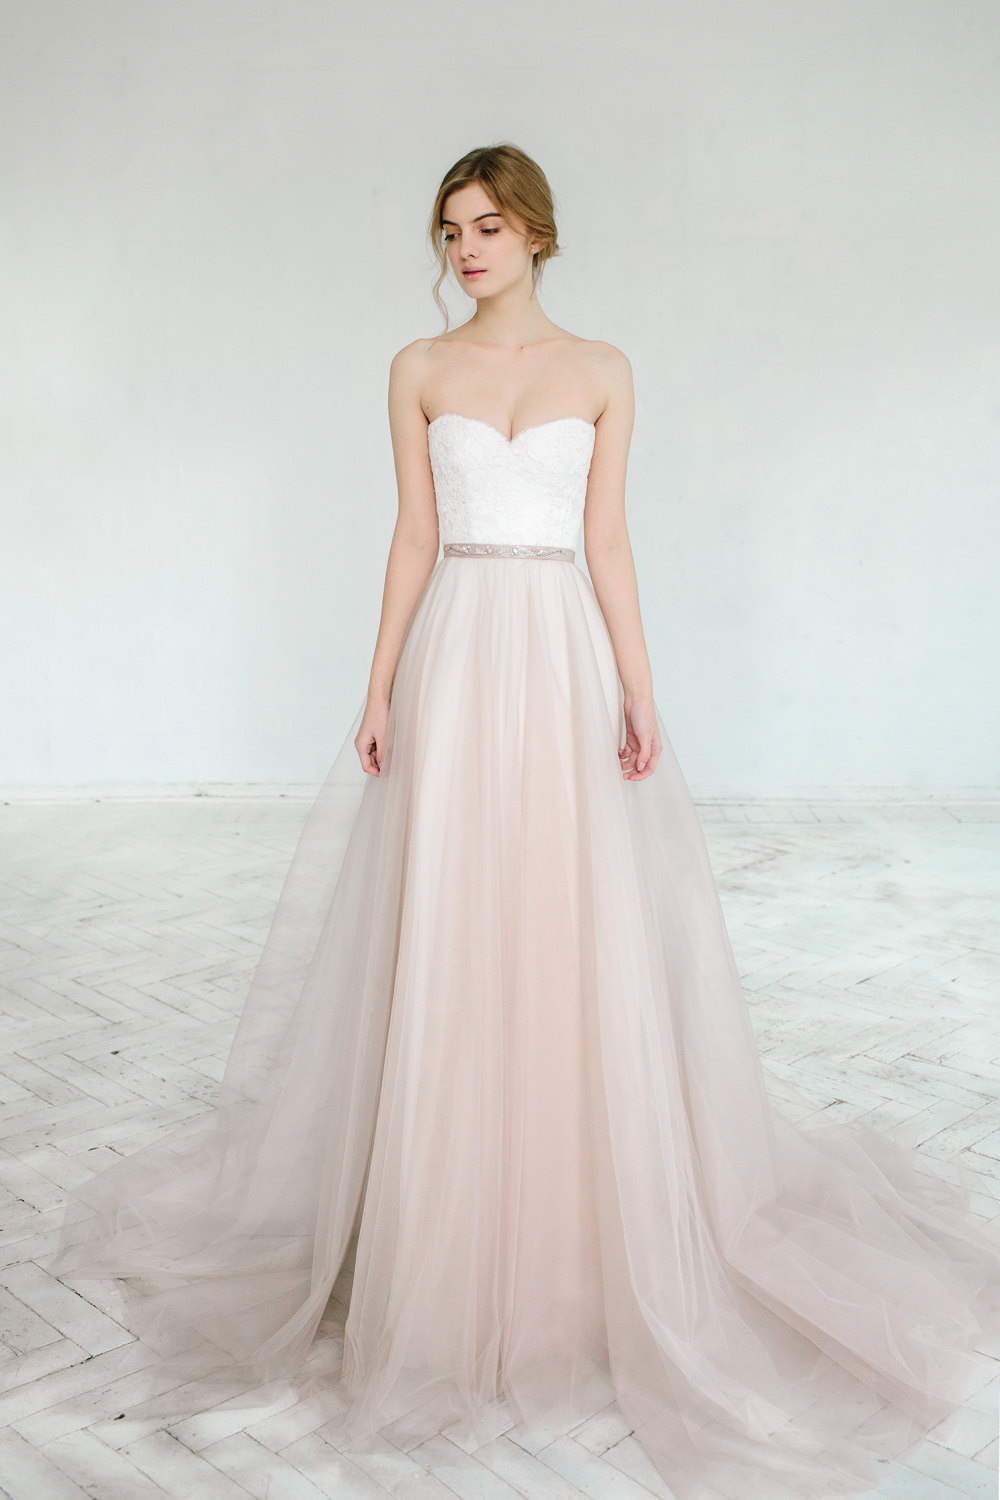 Blush pink tulle wedding dress